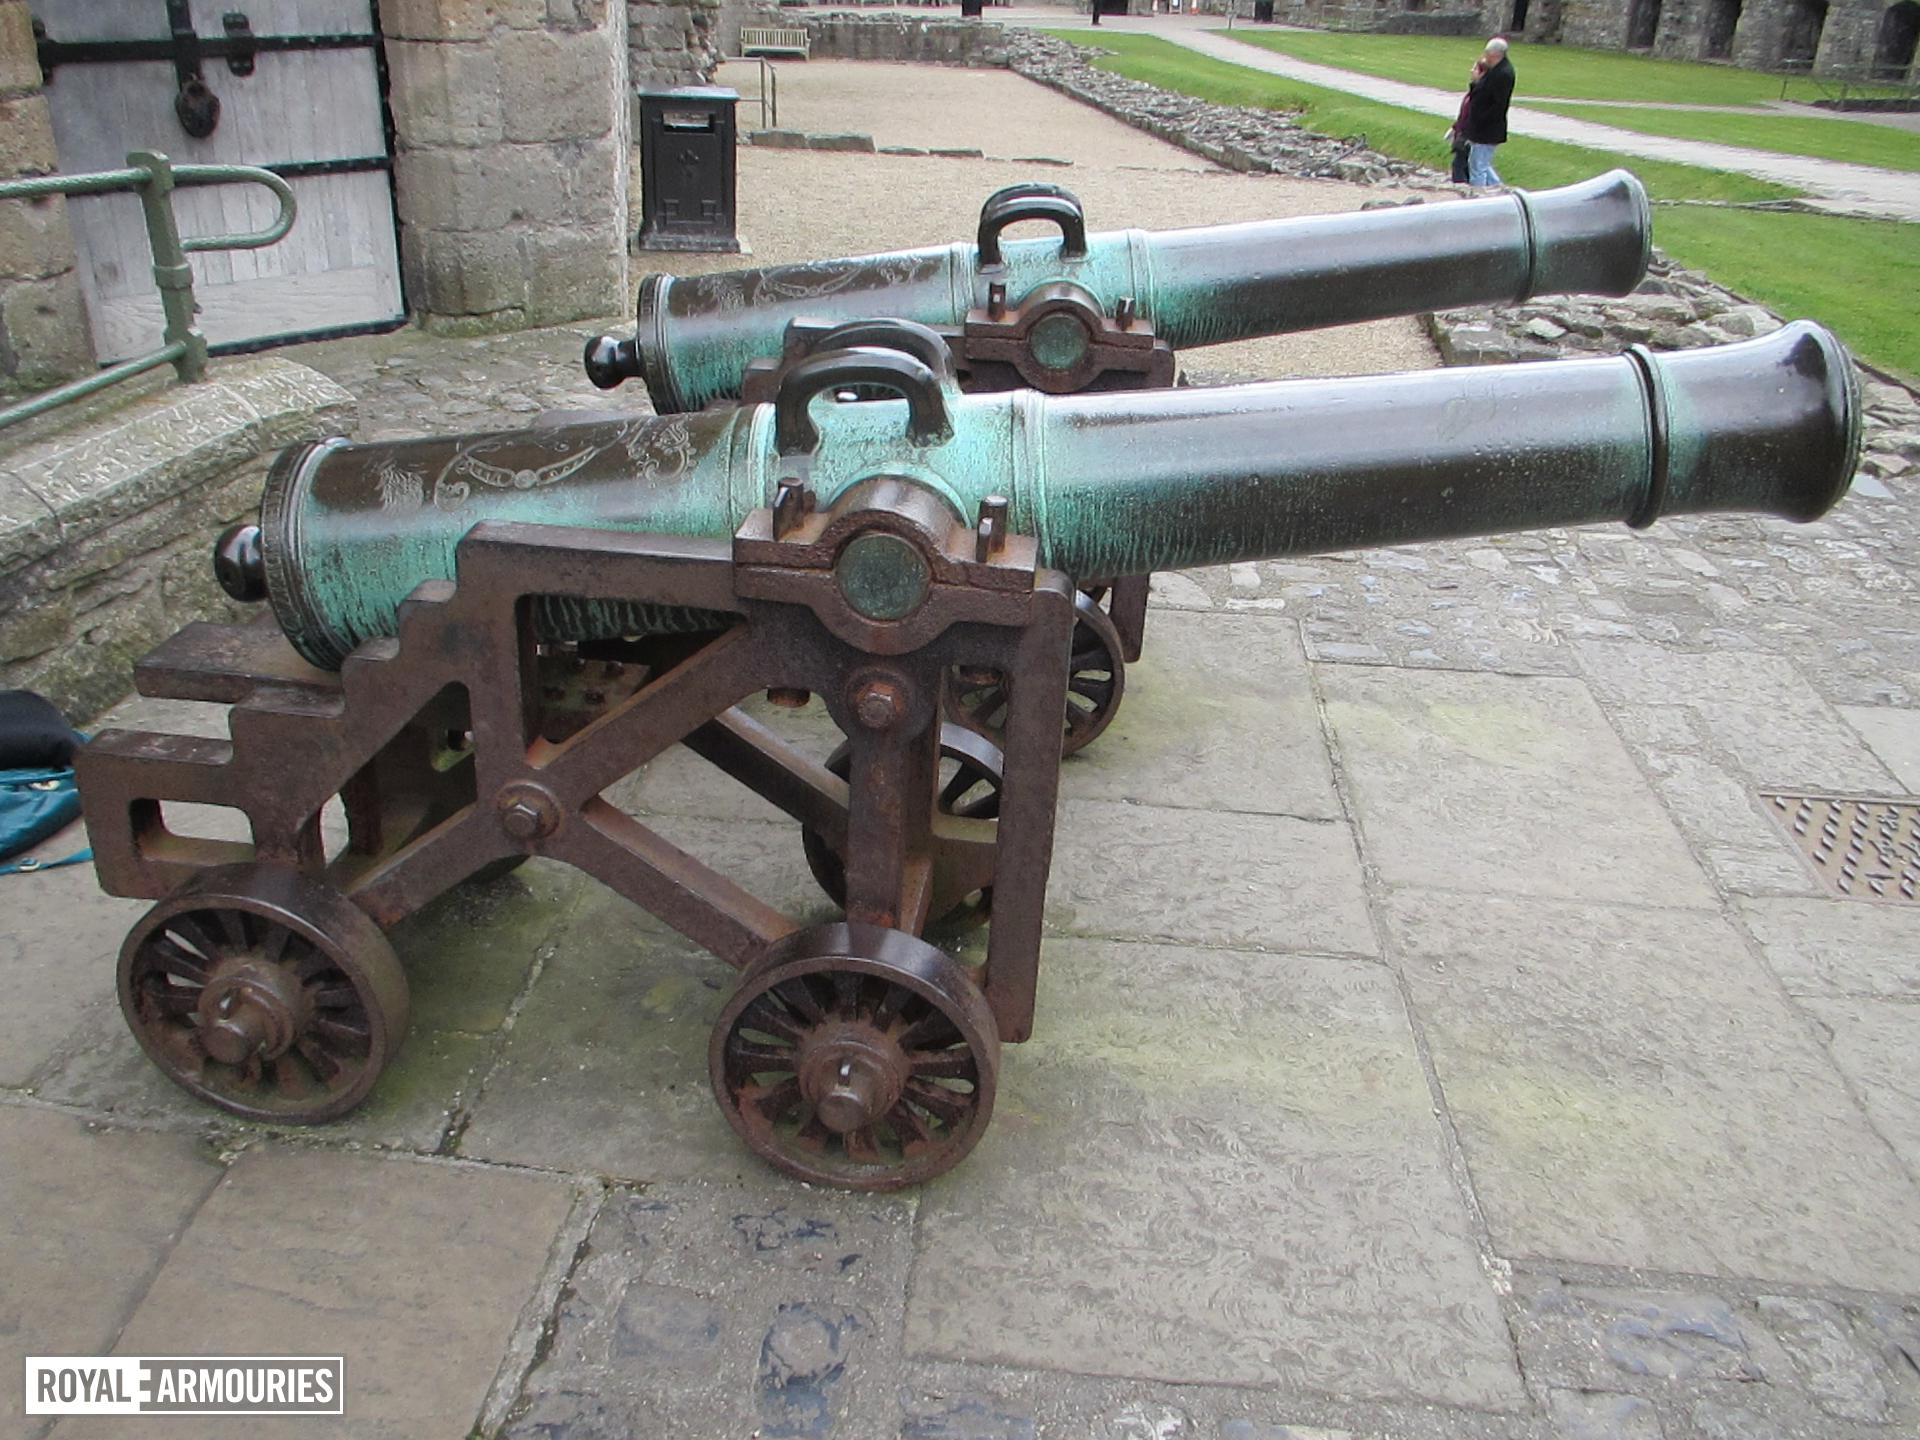 The gun on display at Caernarfon Castle, with its pair XIX.858.